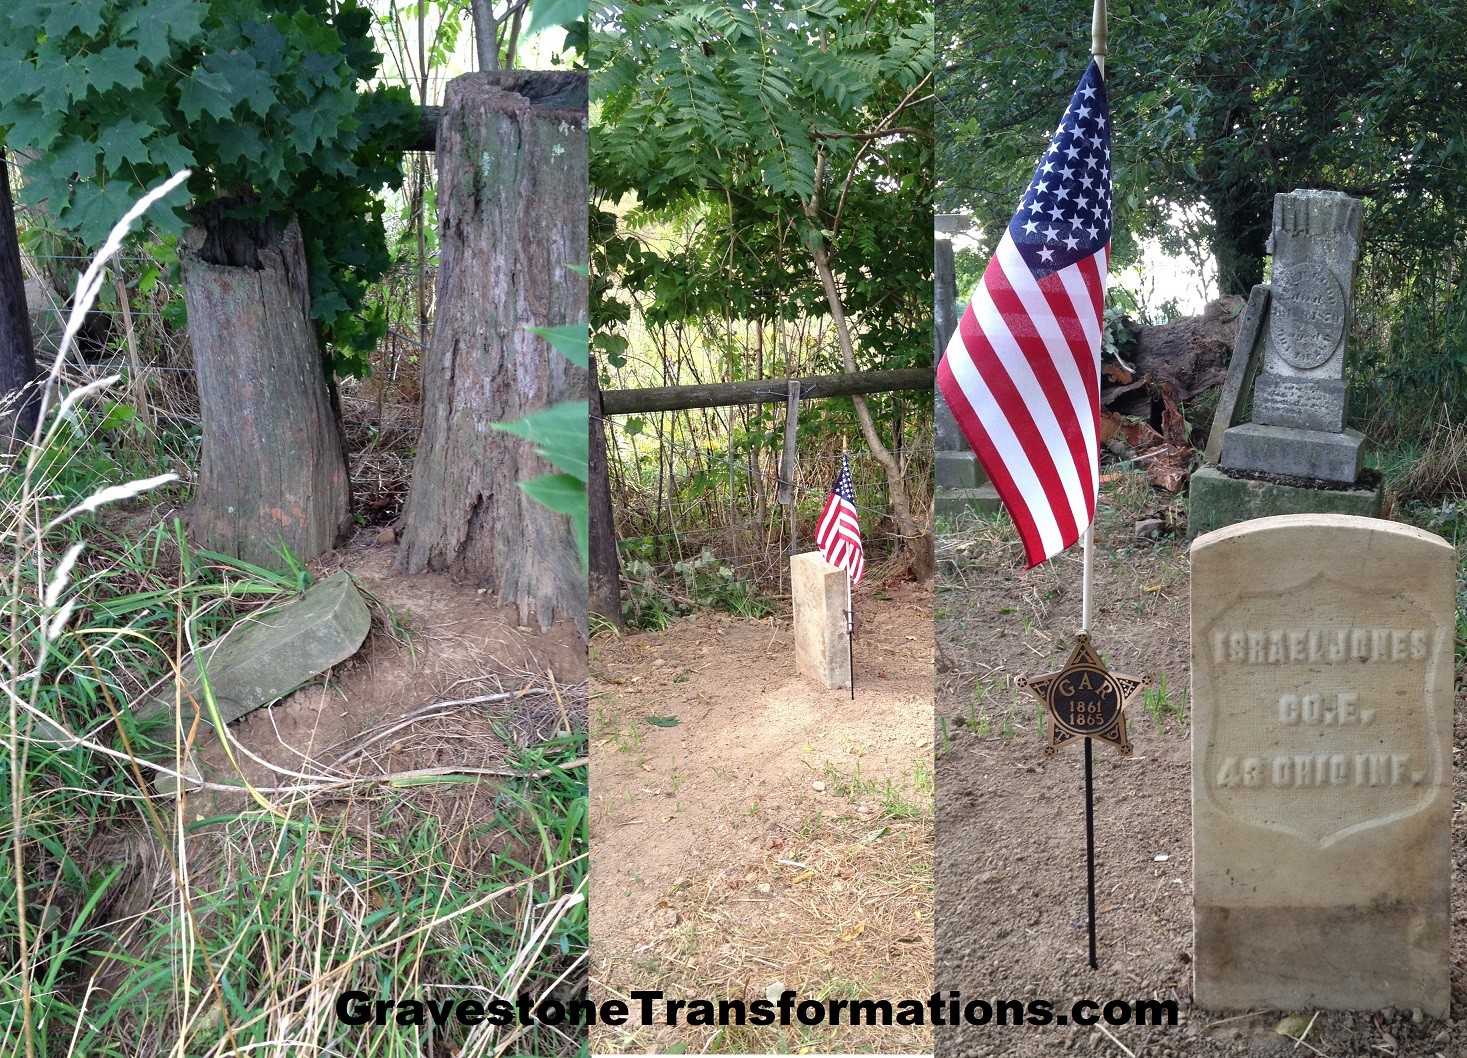 gravestone-transformations-israel-jones-heidelberg-church-cemetery-stoutsville-ba3-1058